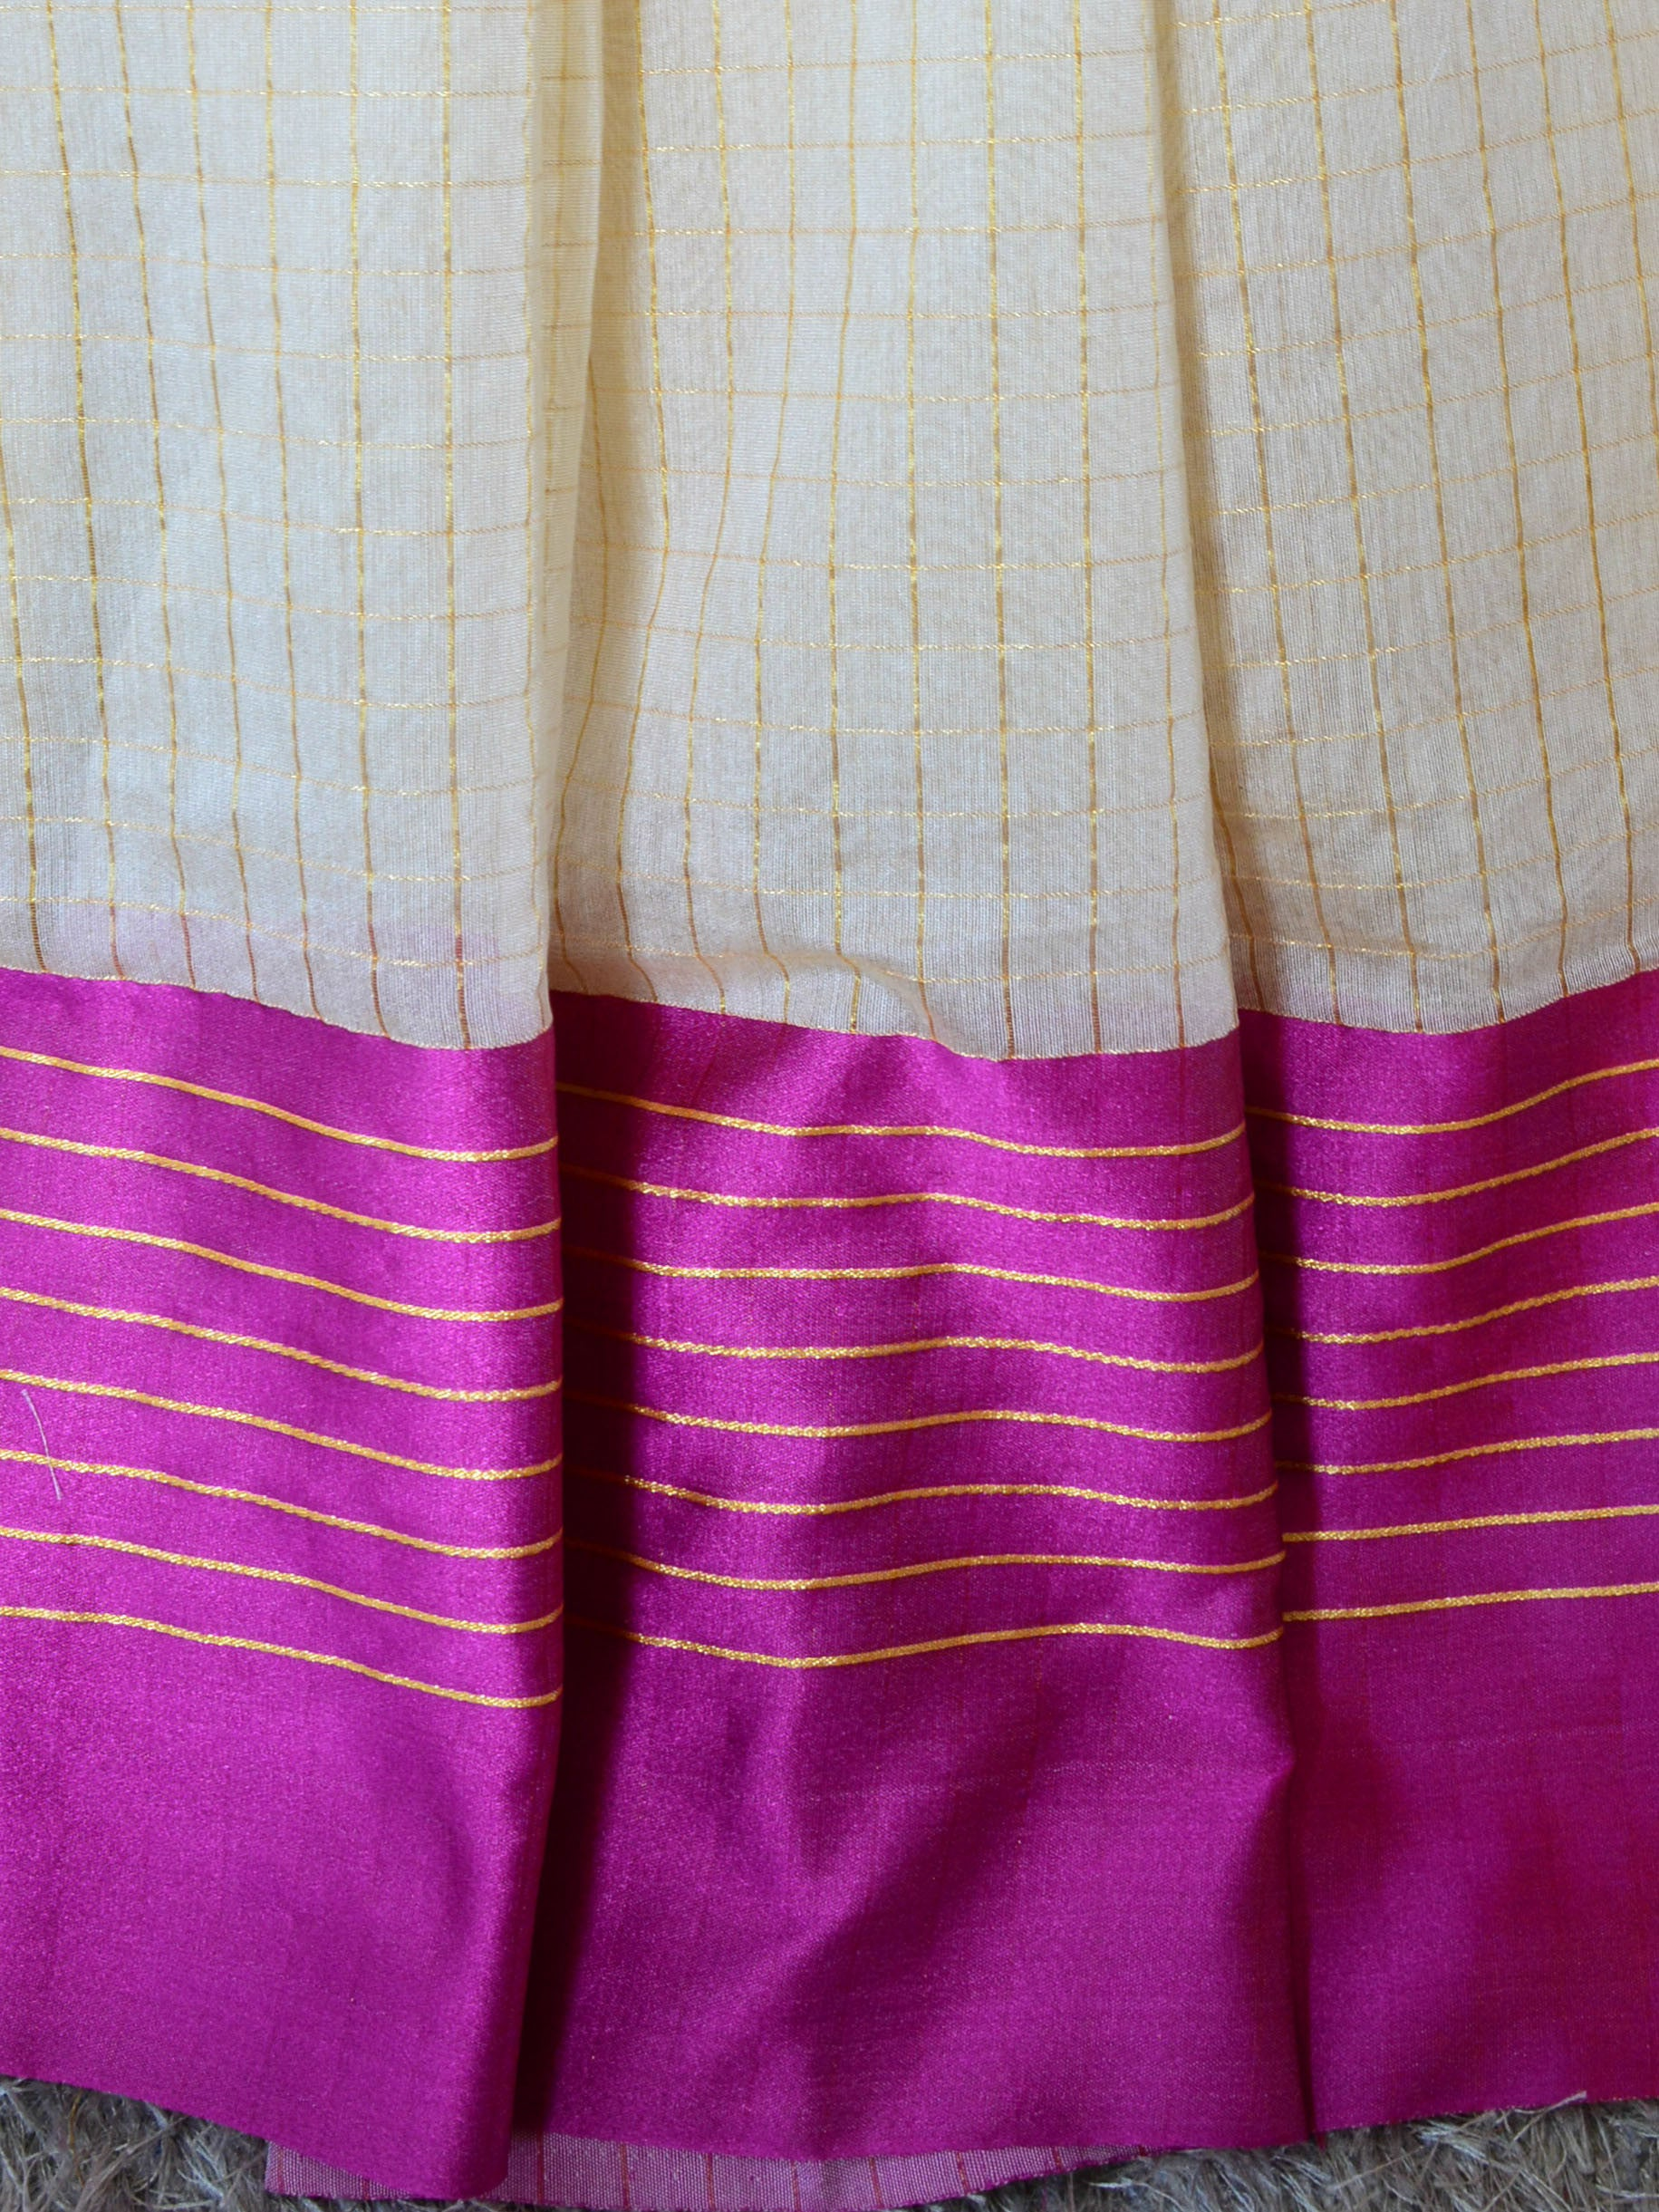 Banarasee/Banarasi Cotton Silk Mix Saree With Golden Checks & Purple Satin Border-Off-White